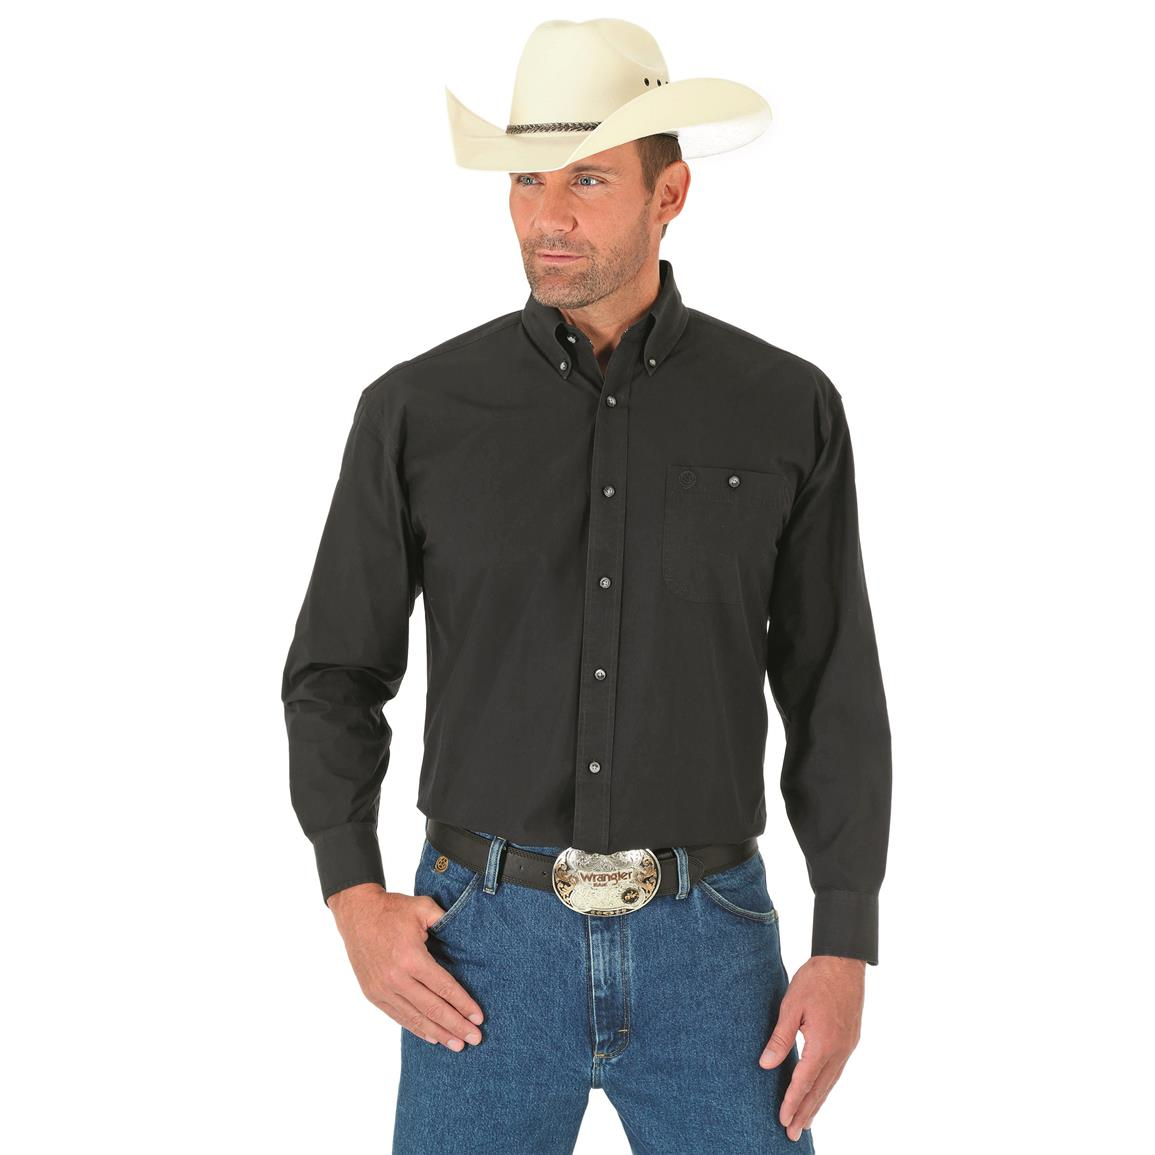 Wrangler George Strait Men's Long Sleeve Button Down Solid Shirt, Black